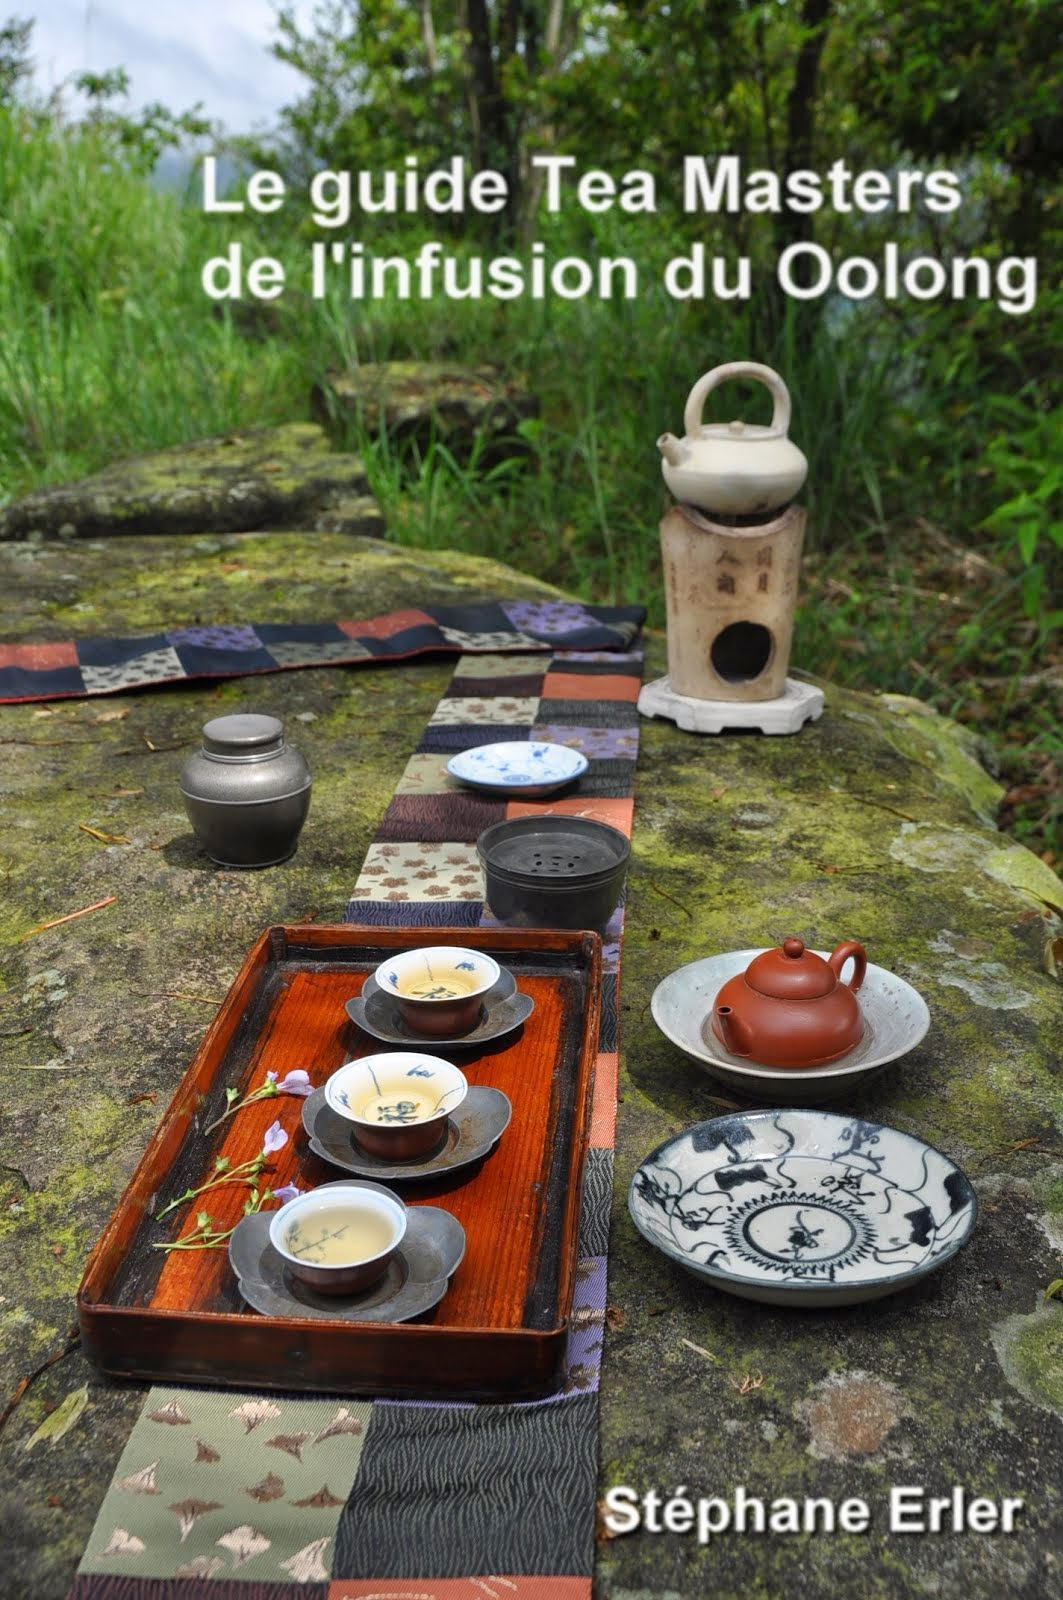 Le guide Tea Masters de l'infusion du Oolong